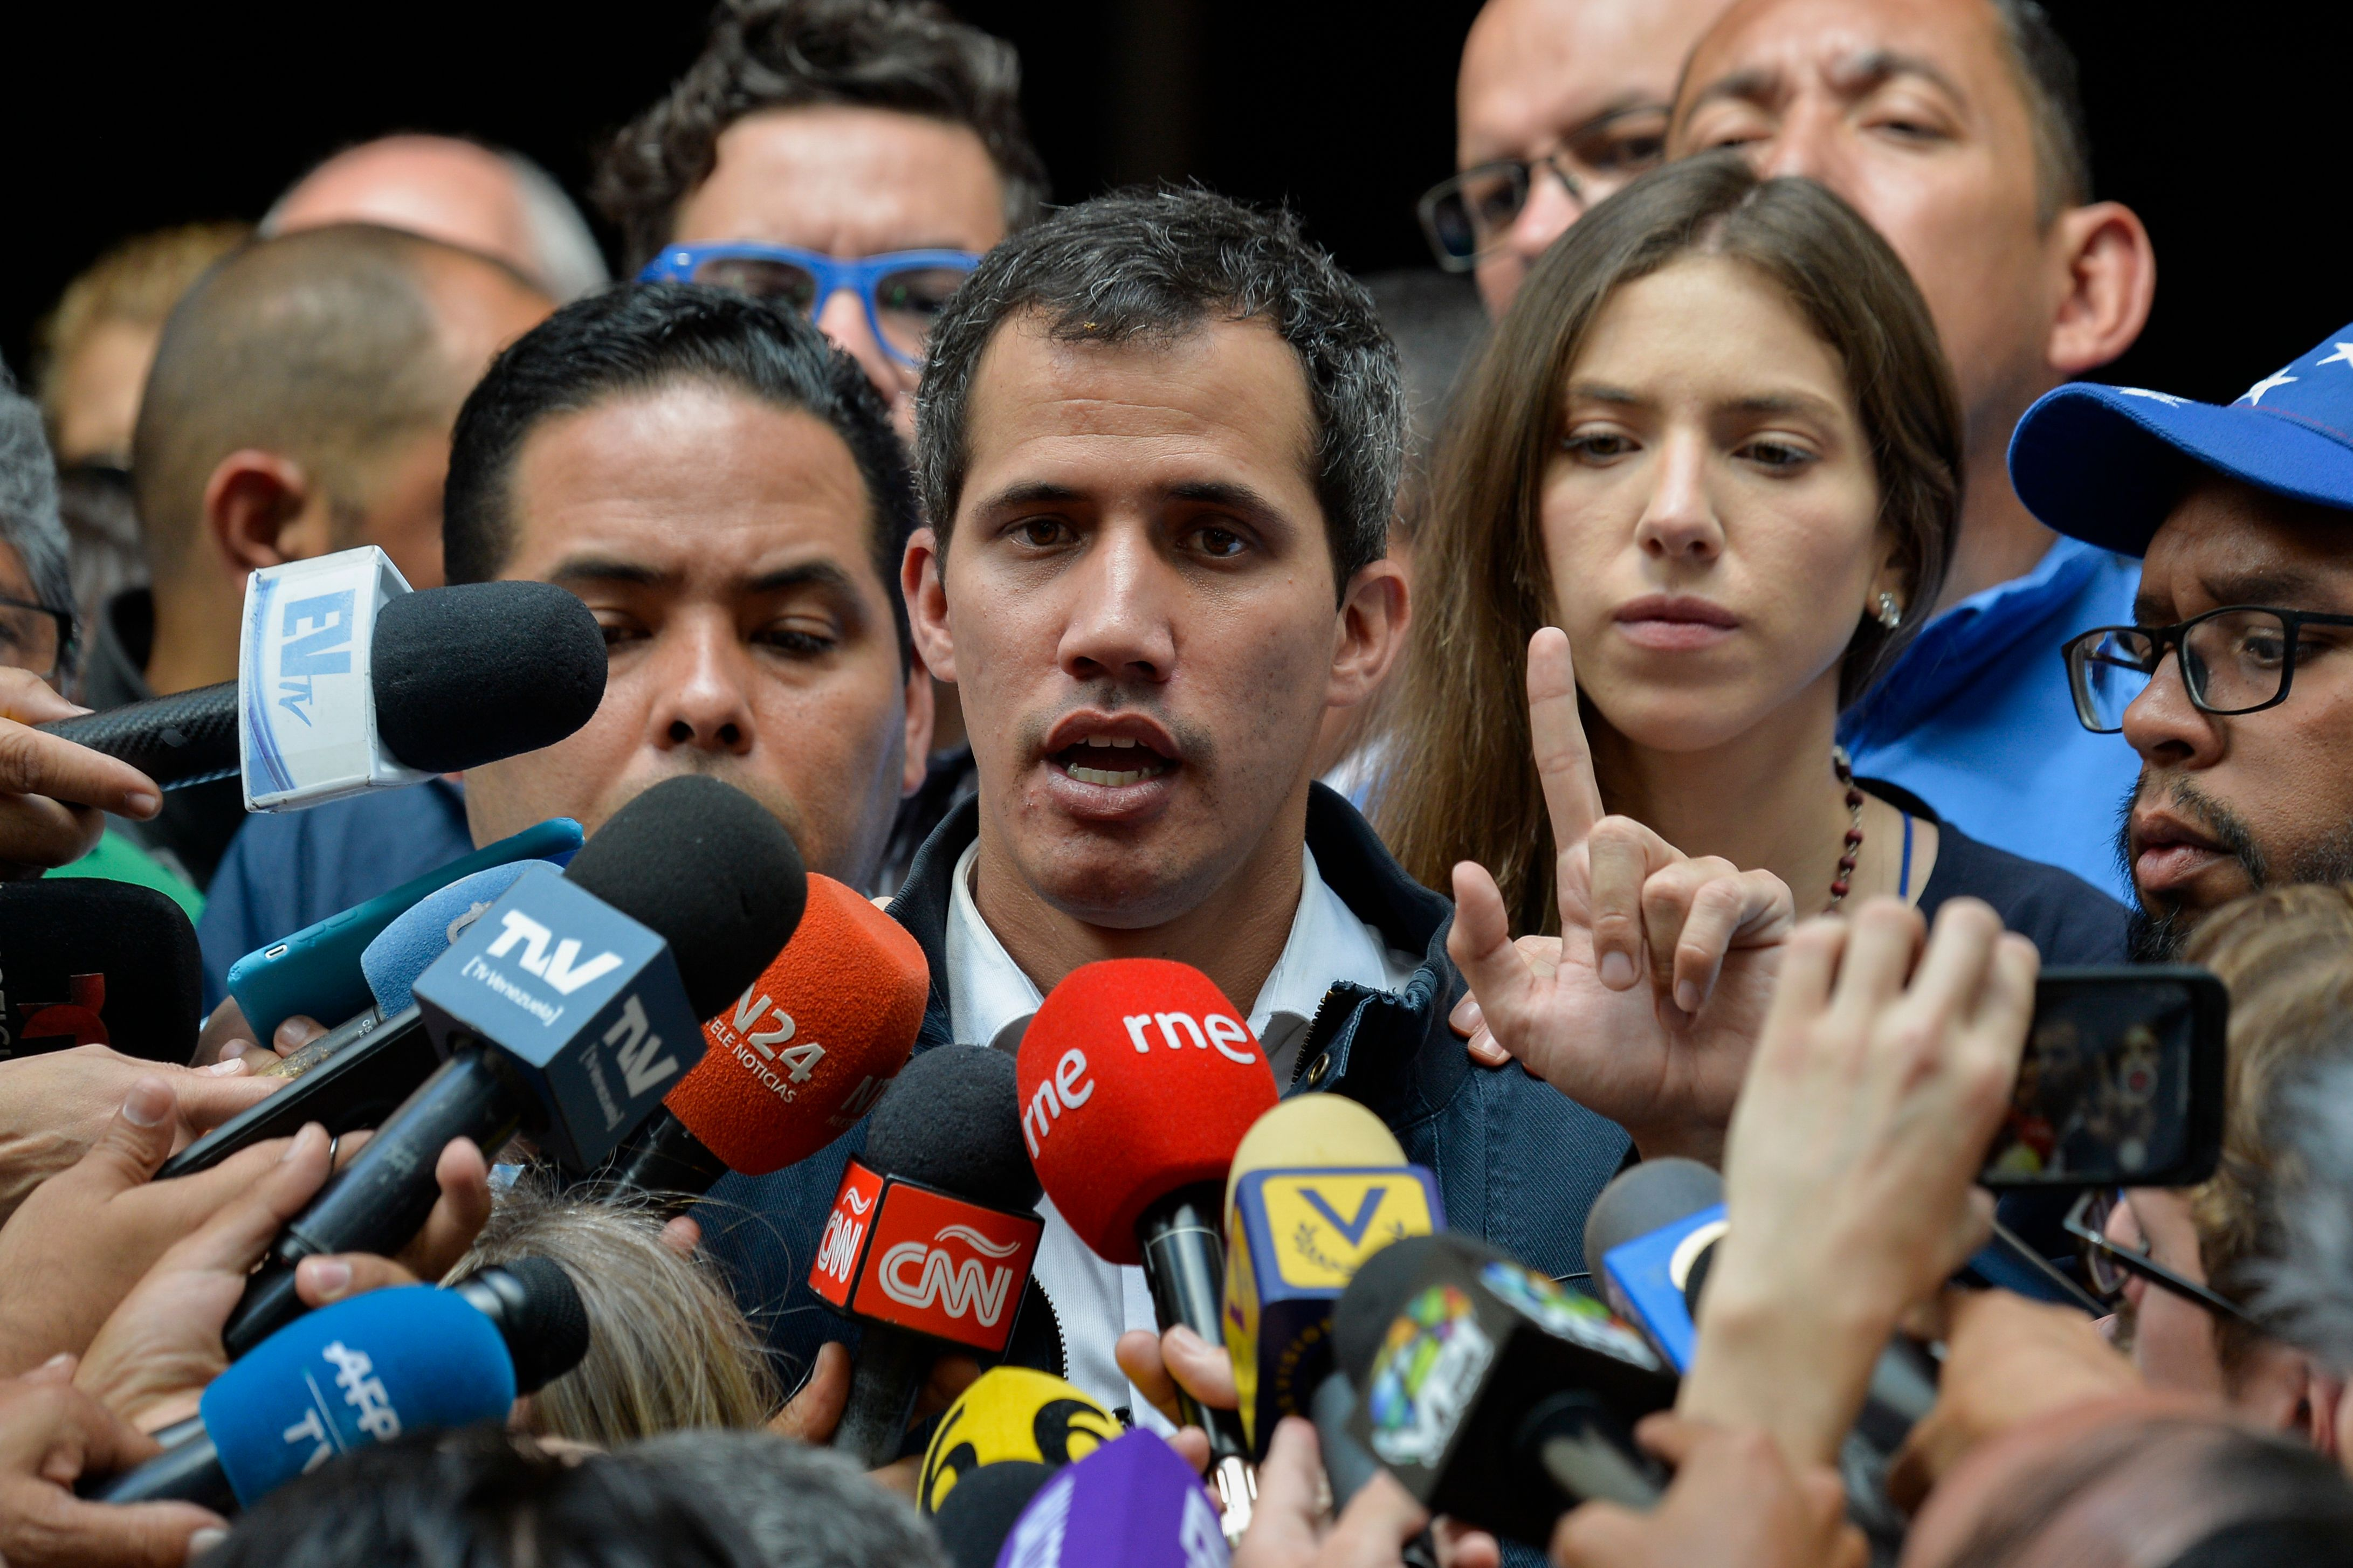 "Venezuela's National Assembly head and self-proclaimed ""acting president"" Juan Guaido speaks to the press after attending a mass in honour to the fallen in the fight for freedom, political prisoners and the exiled, at the San Jose church in Caracas on January 27, 2019. - Guaido, who has galvanized a previously divided opposition, is offering an amnesty approved by the opposition-controlled National Assembly to anyone in the military who disavows President Nicolas Maduro, even suggesting amnesty for Maduro himself. (Photo by LUIS ROBAYO/AFP/Getty Images)"